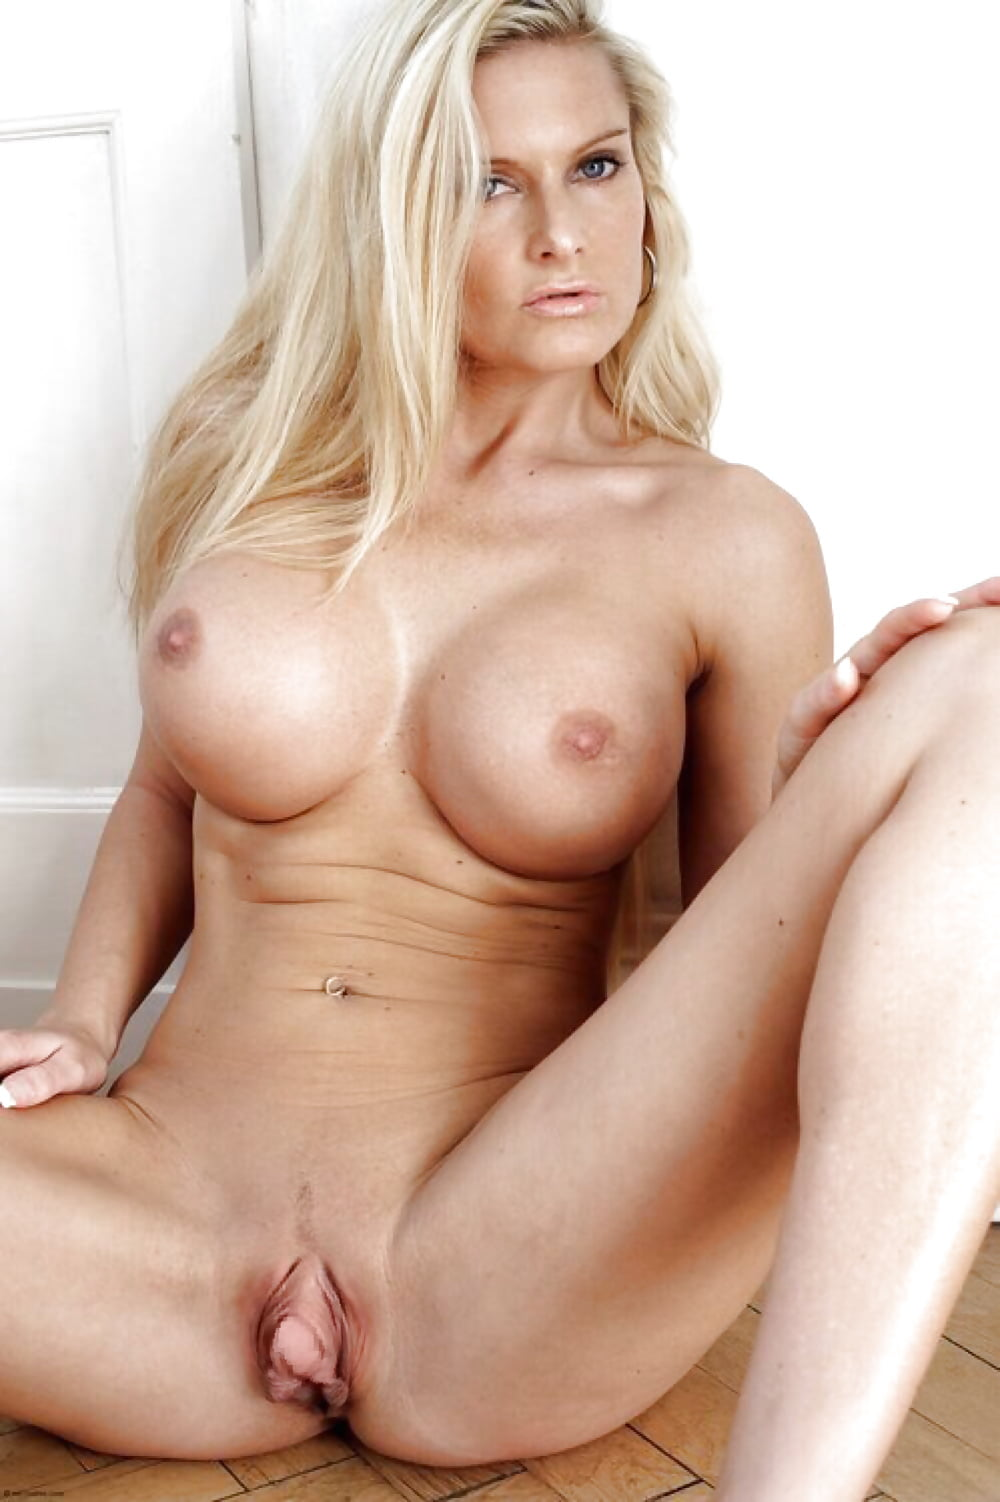 free-nude-blonde-milfs-pictures-homemade-skirt-porn